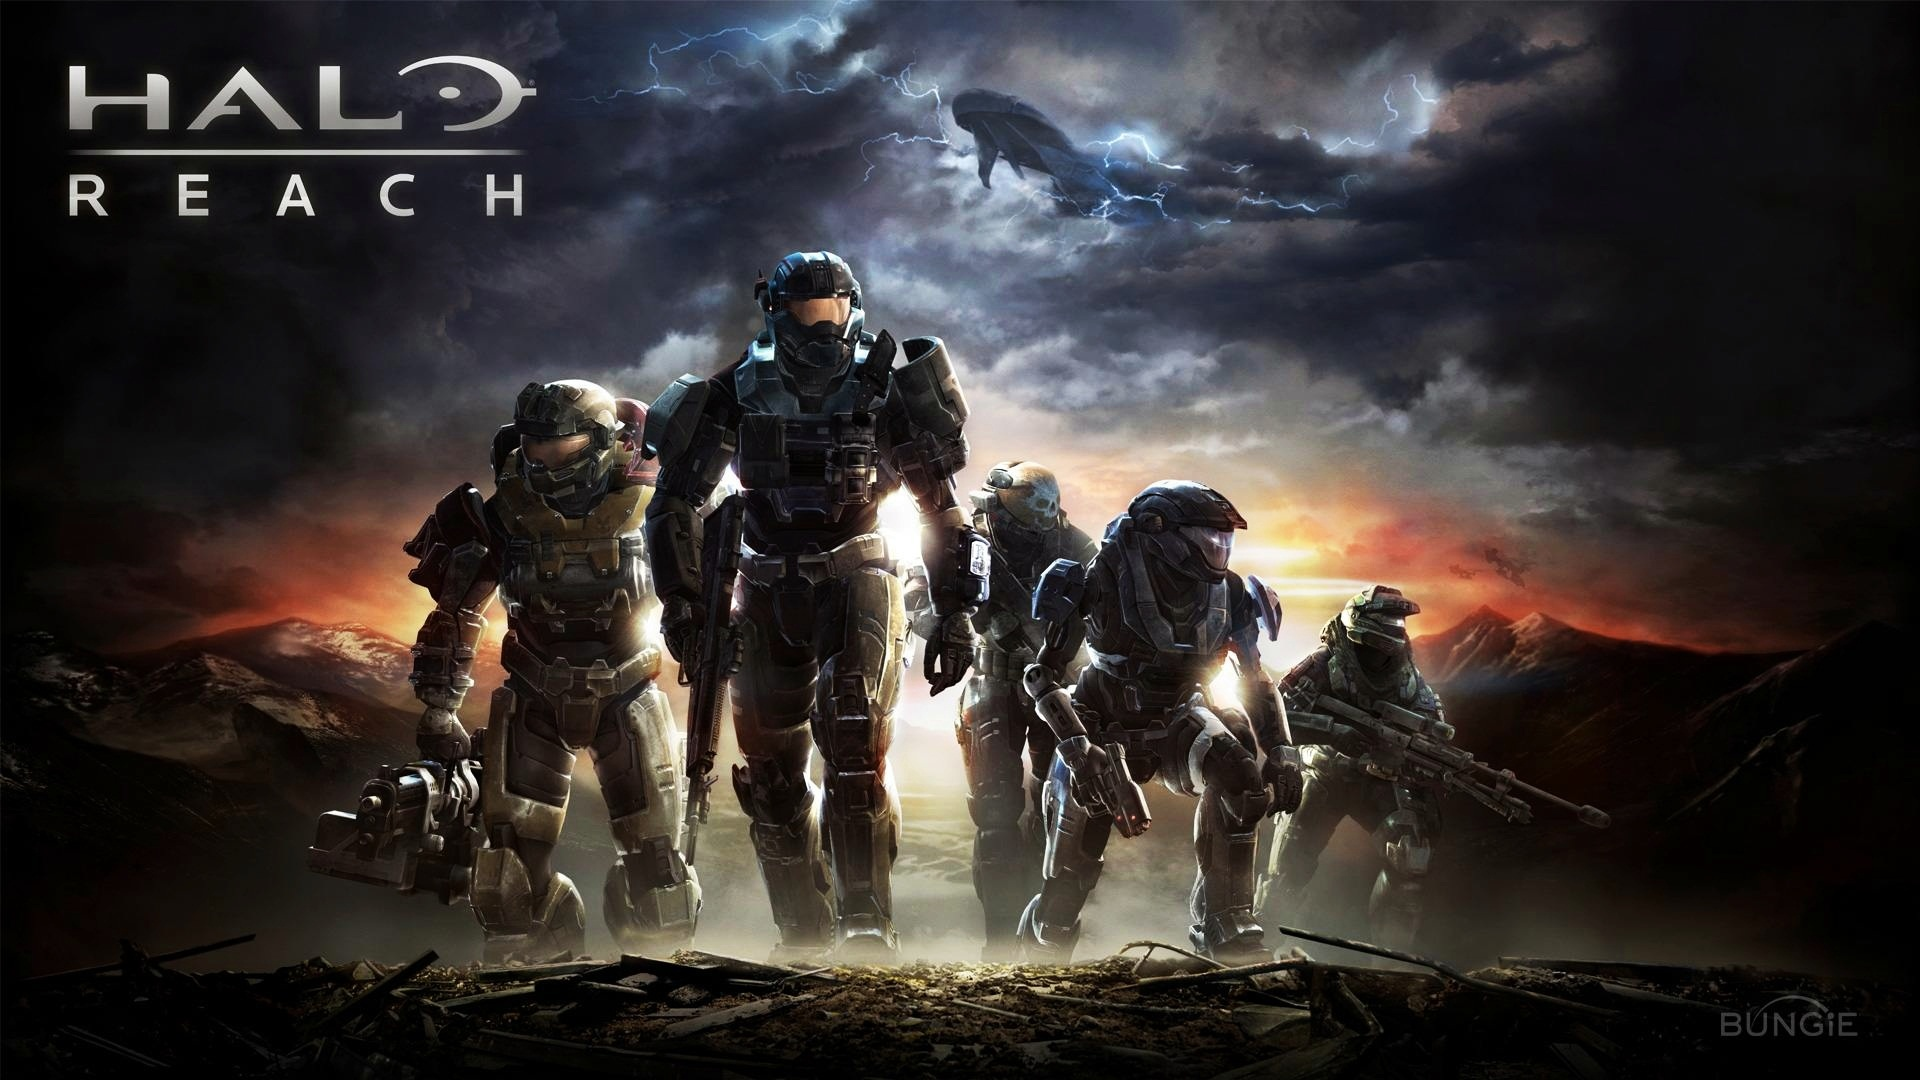 fond écran halo reach hd